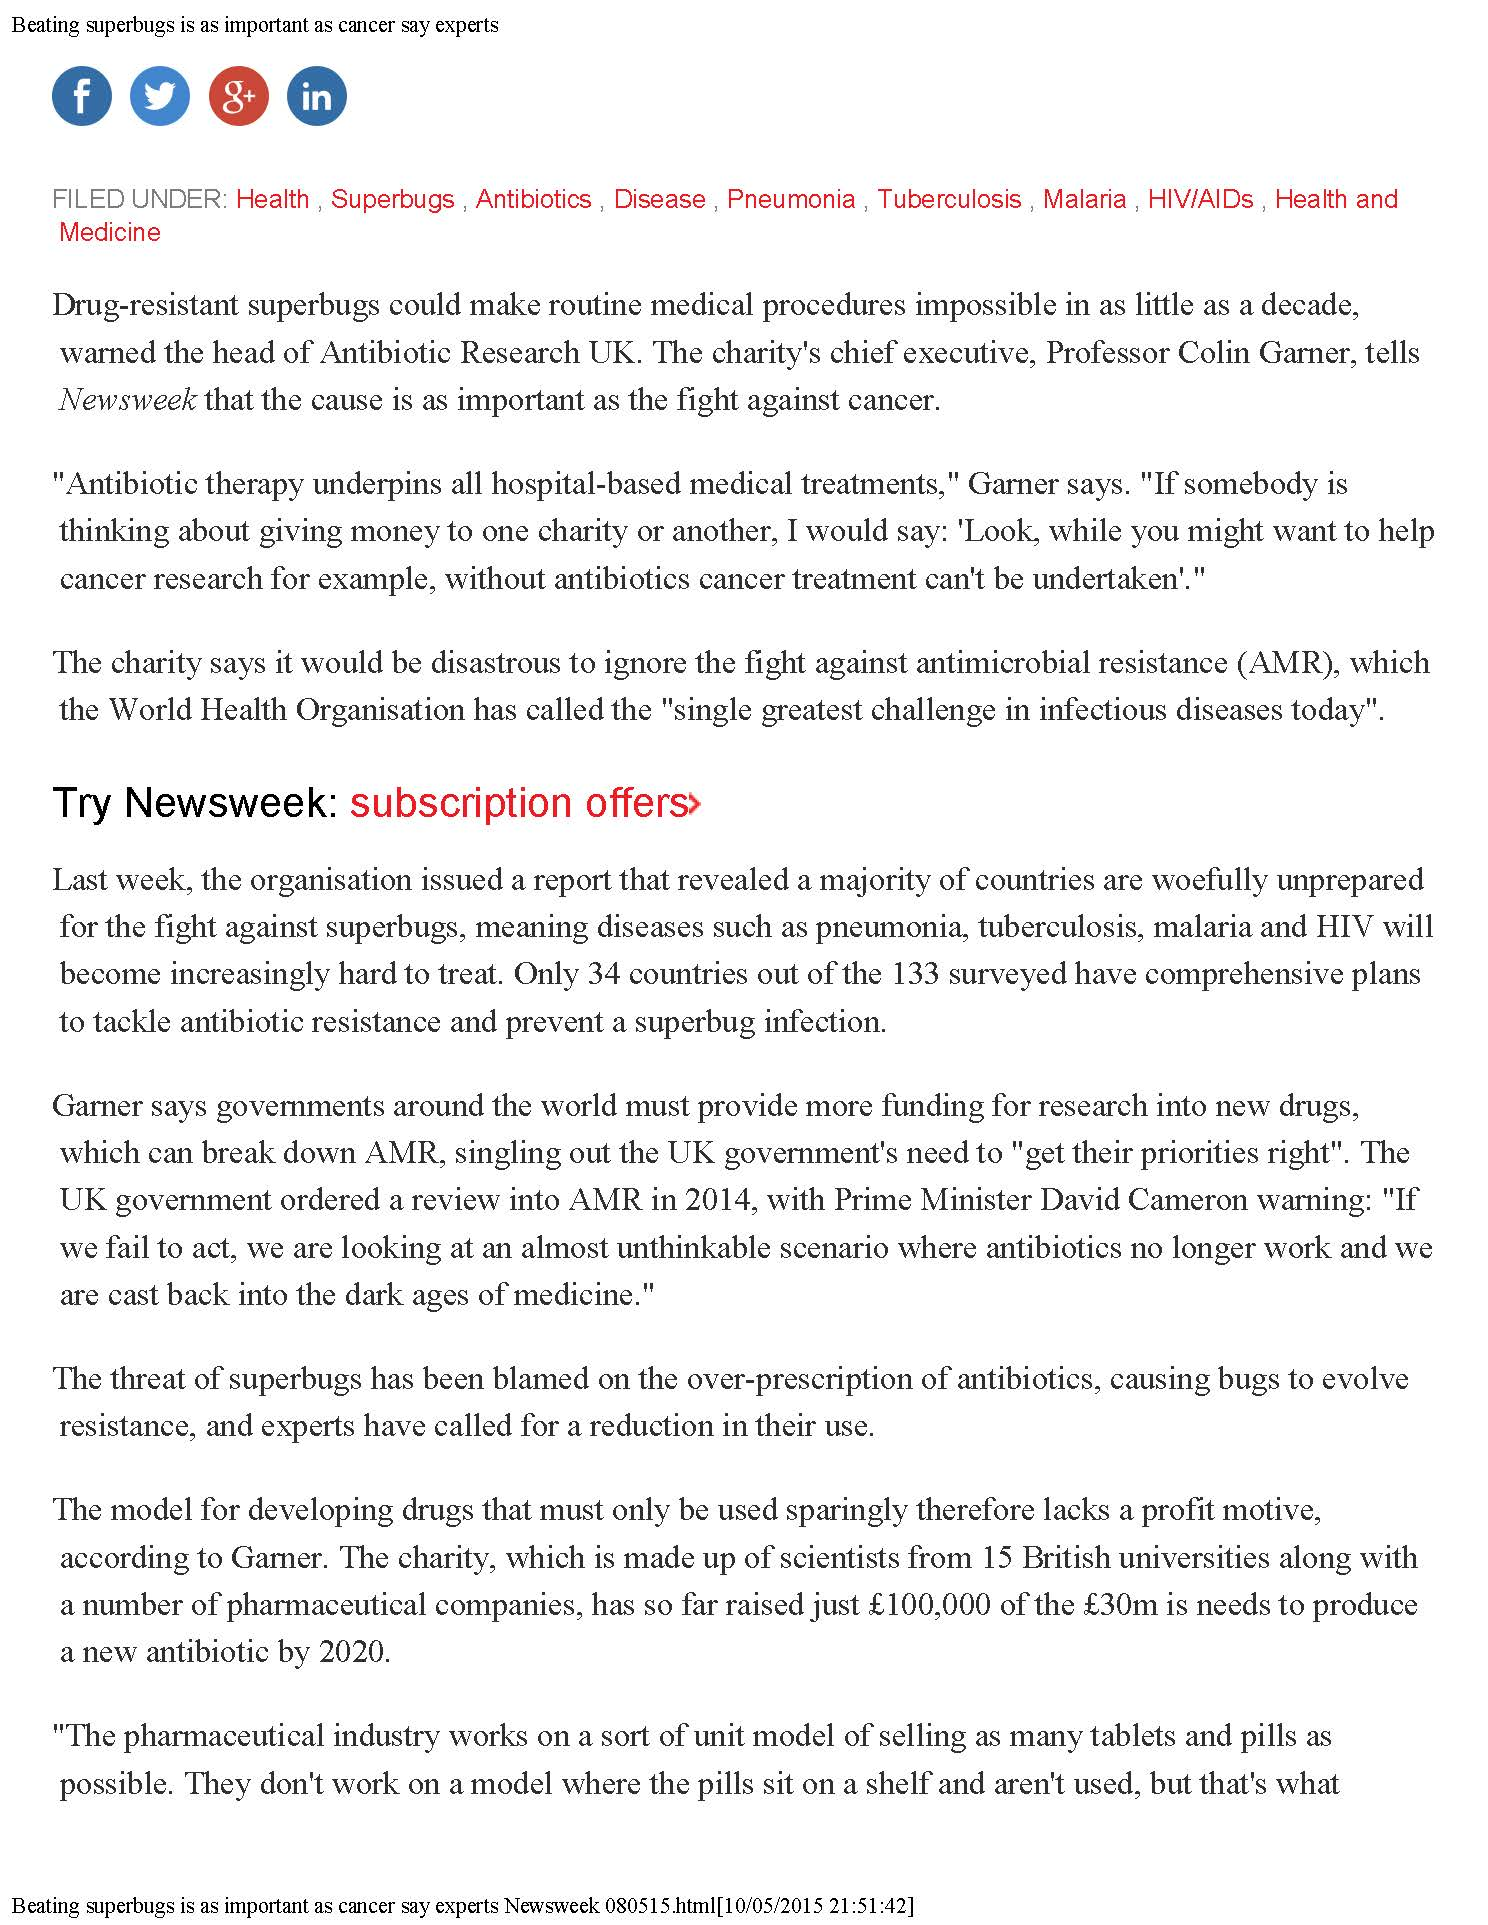 newsweek essay 'newsweek' recalled thousands of premature issues celebrating an  back when  trump became nominee (i think), mm wrote an essay and put.